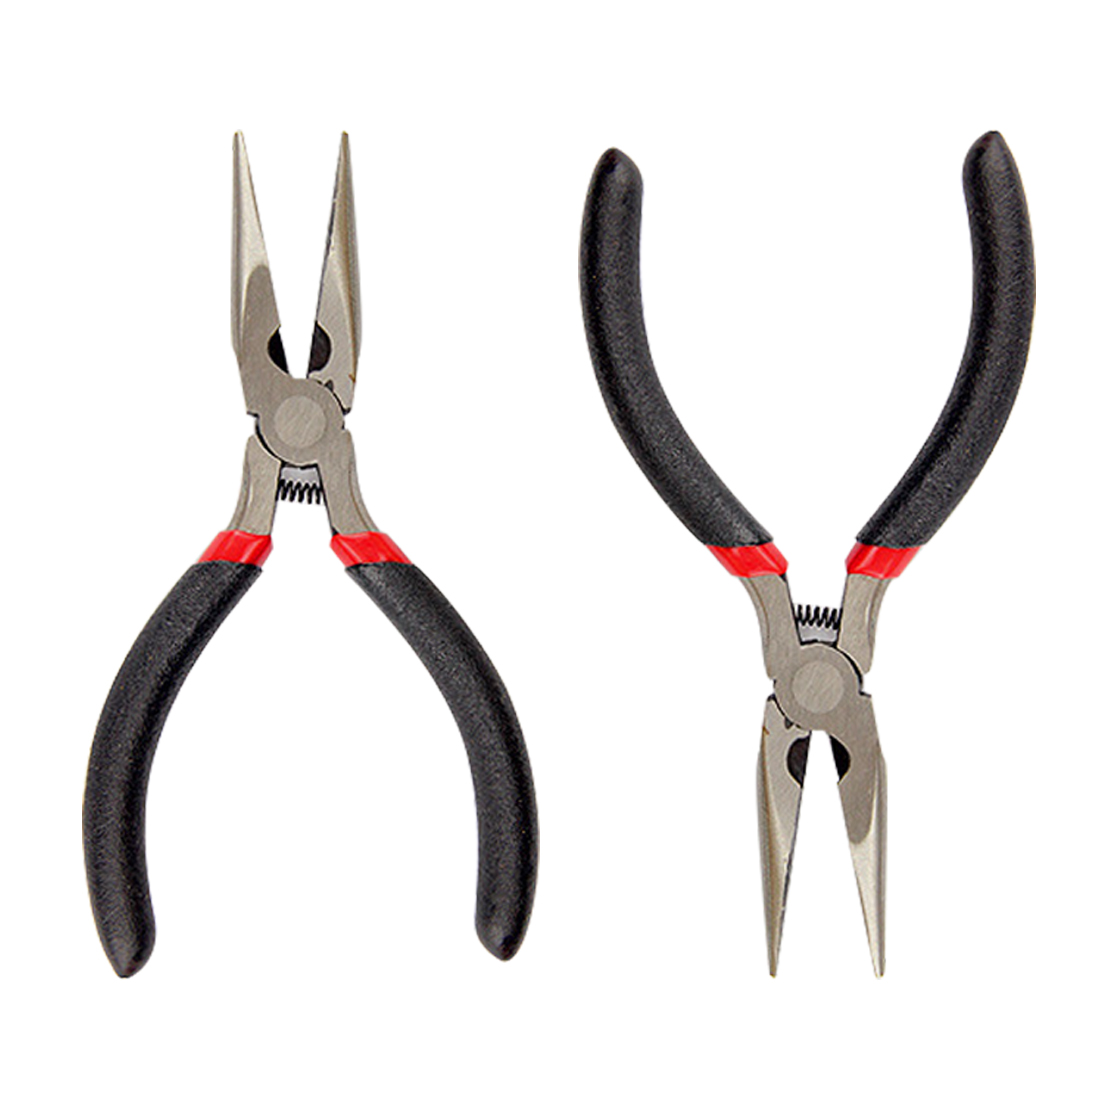 Jewellery Making Tools Beading Pliers Cutter Round Flat Wire Side Cutters Kit Set DIY Craft Tool